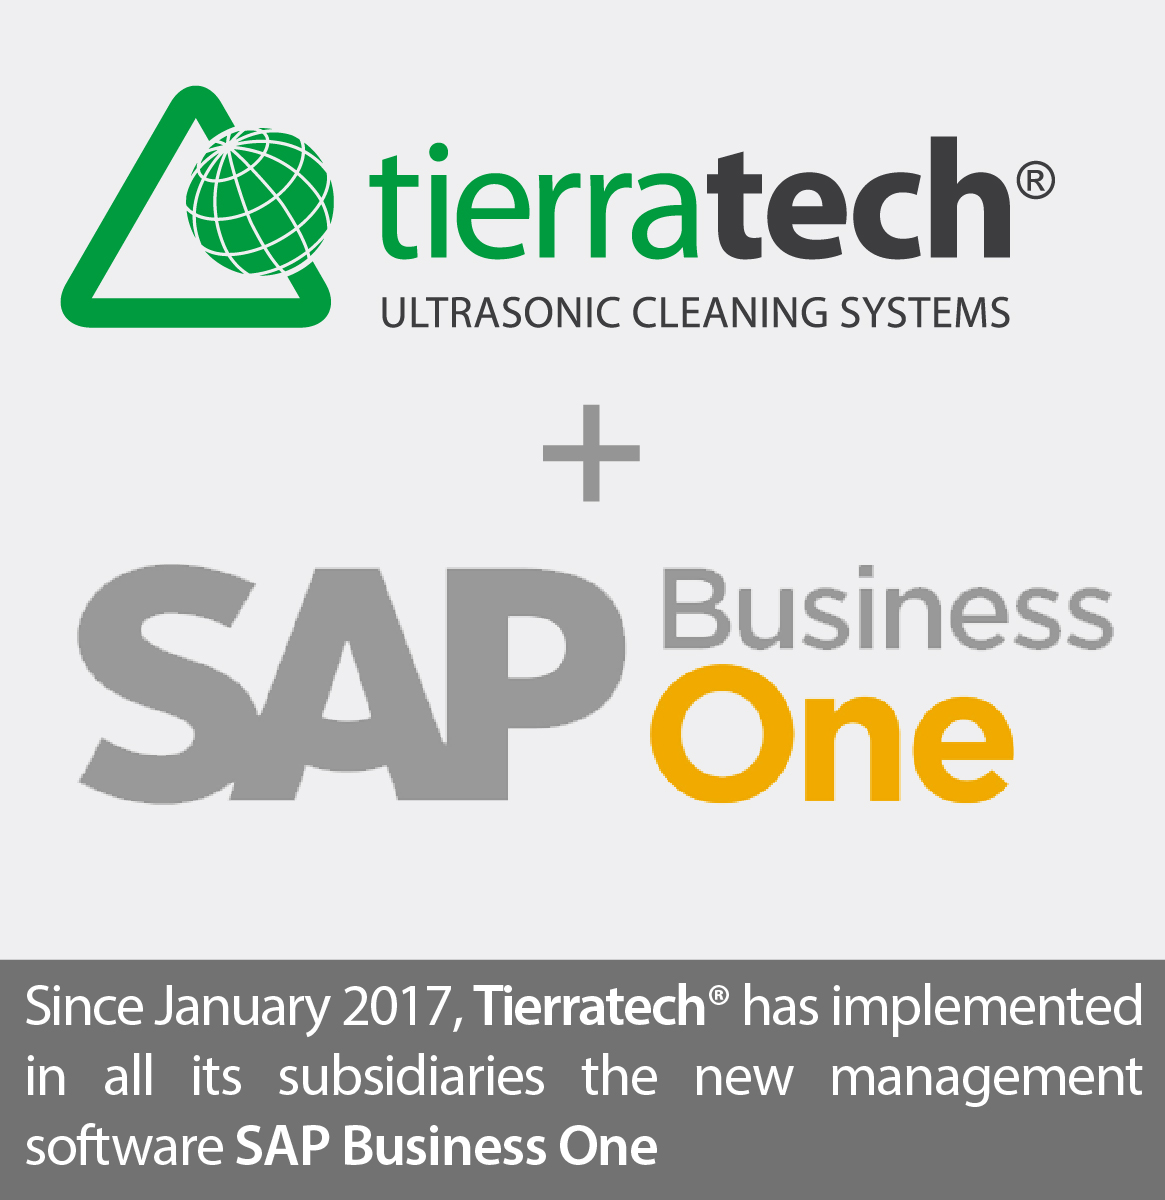 SAP Tierratech®